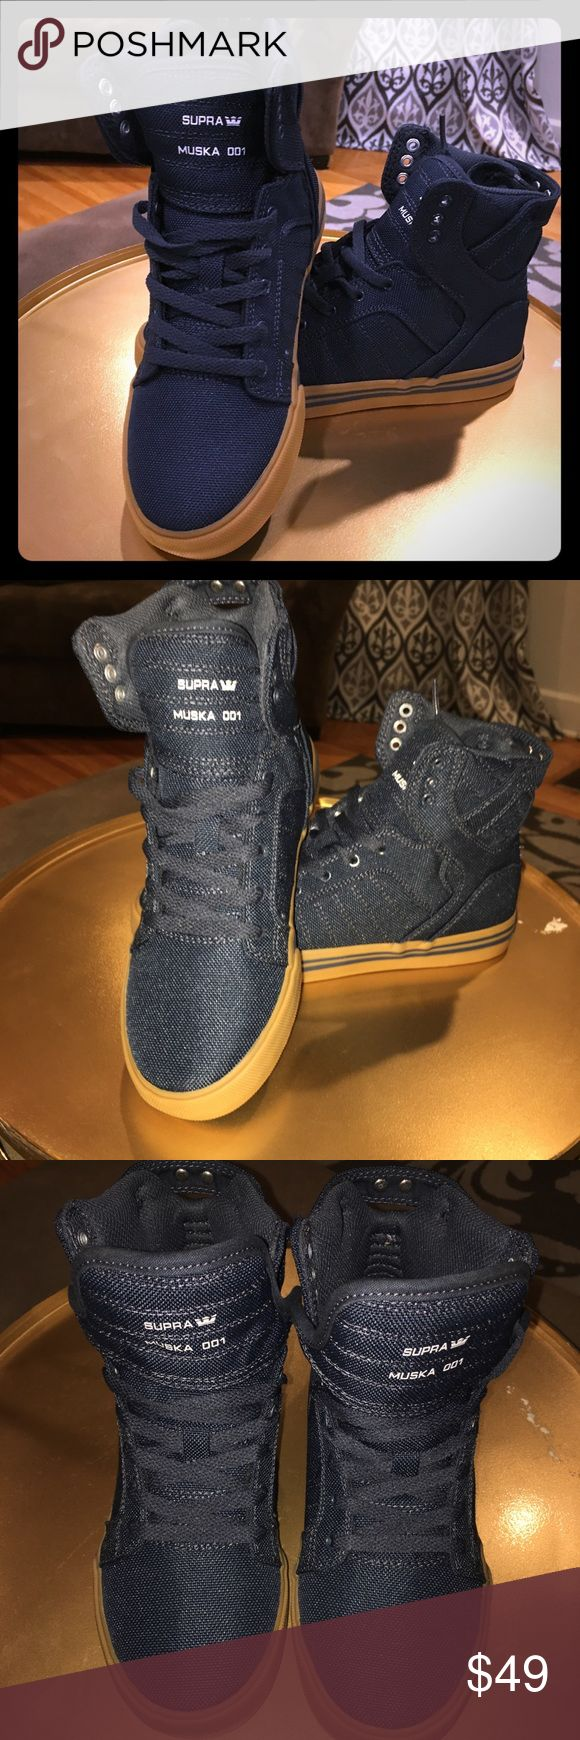 Firm! Supra Skytop High Tops Sneakers Skater Shoes I have reduced these shoes to the lowest possible price, so the price is FIRM on this item!  I am selling a pair of New in the original box,  Supra Skytop High Top Sneakers in US Youth Size 3. These beauties are Navy and look like denim. They are absolutely stunning! These came from Nordstrom's! Supra Shoes Sneakers